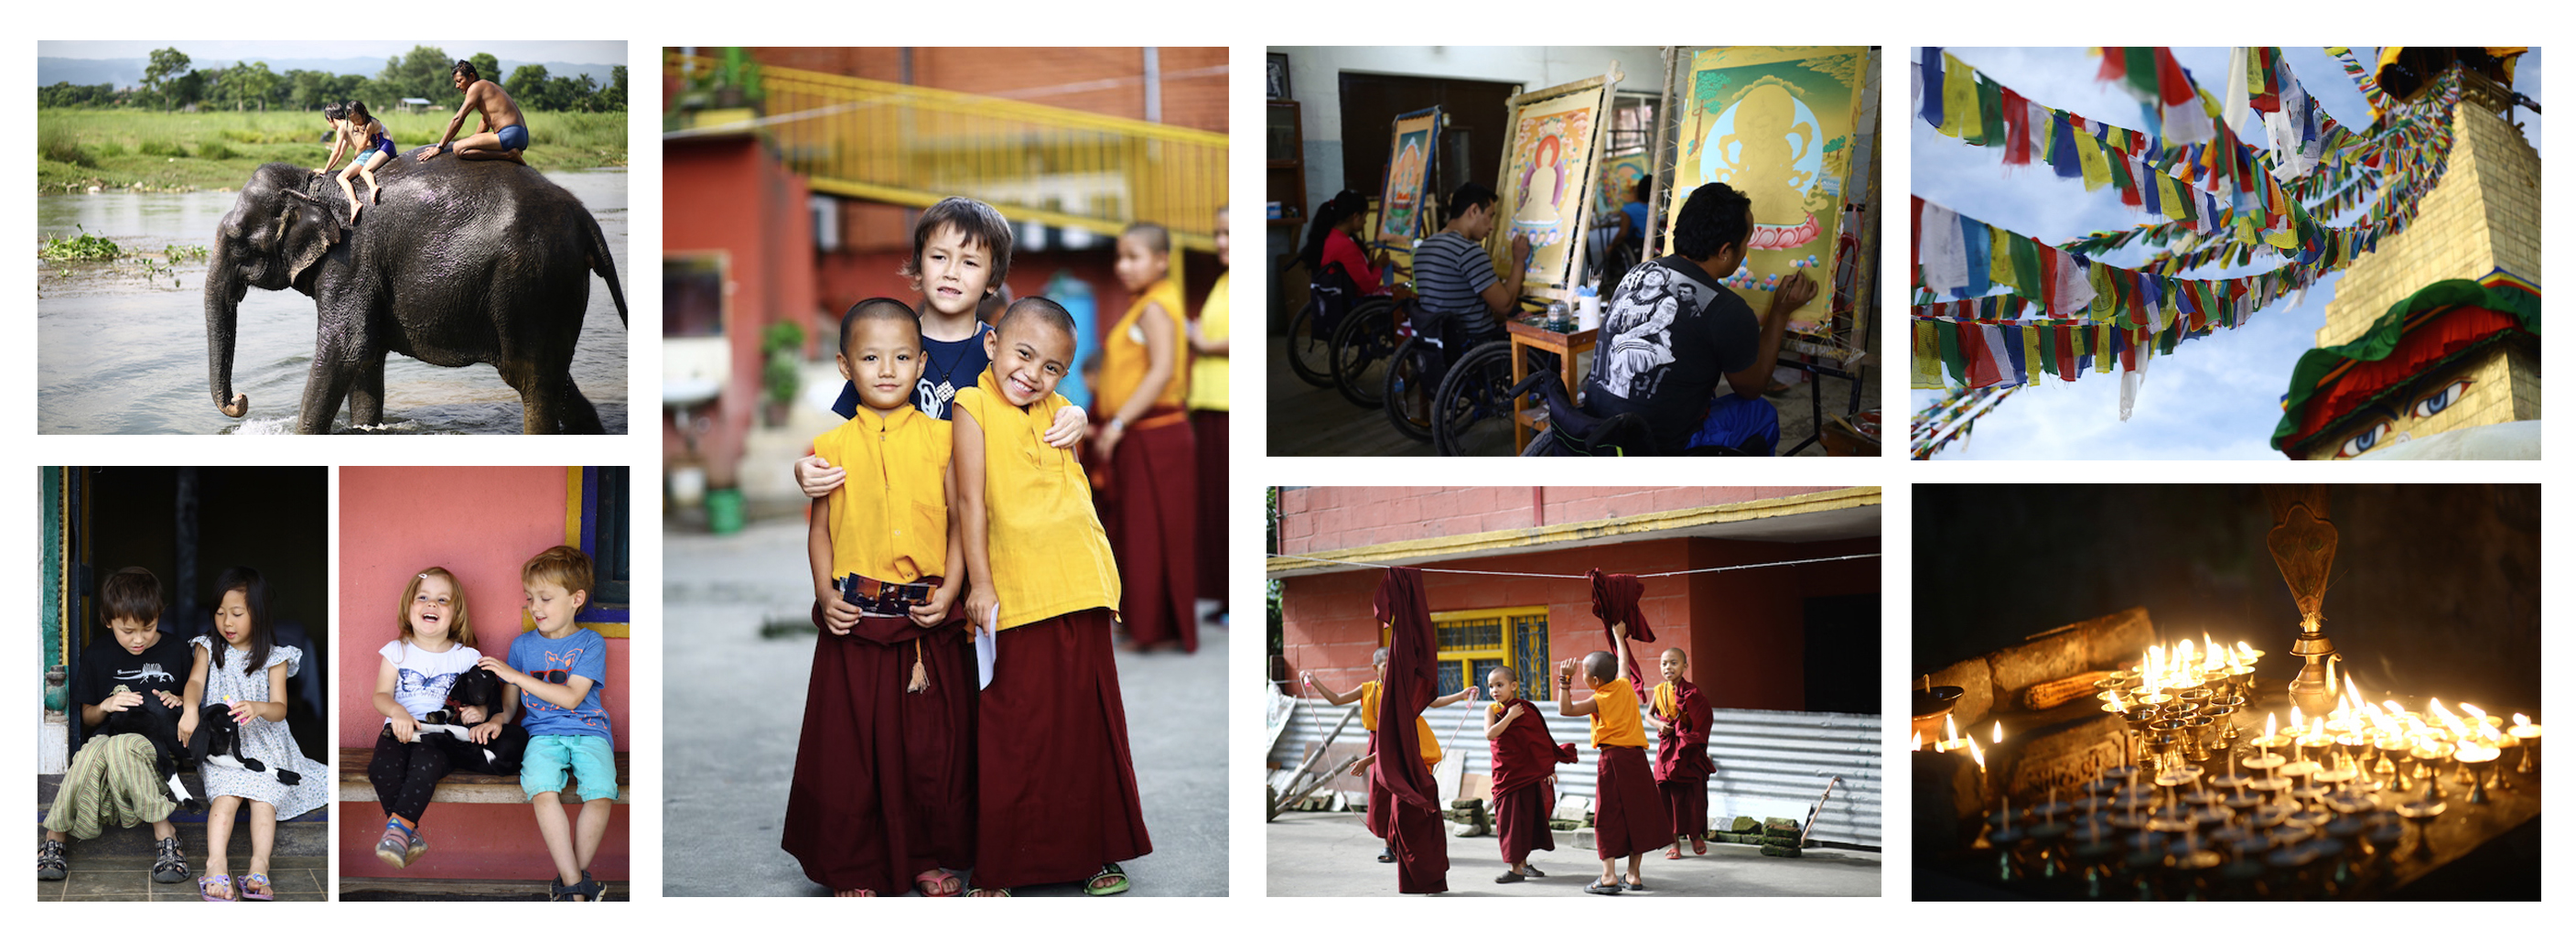 Nepal cultural trip for kids and family, photographed by Not An Illusion Productions